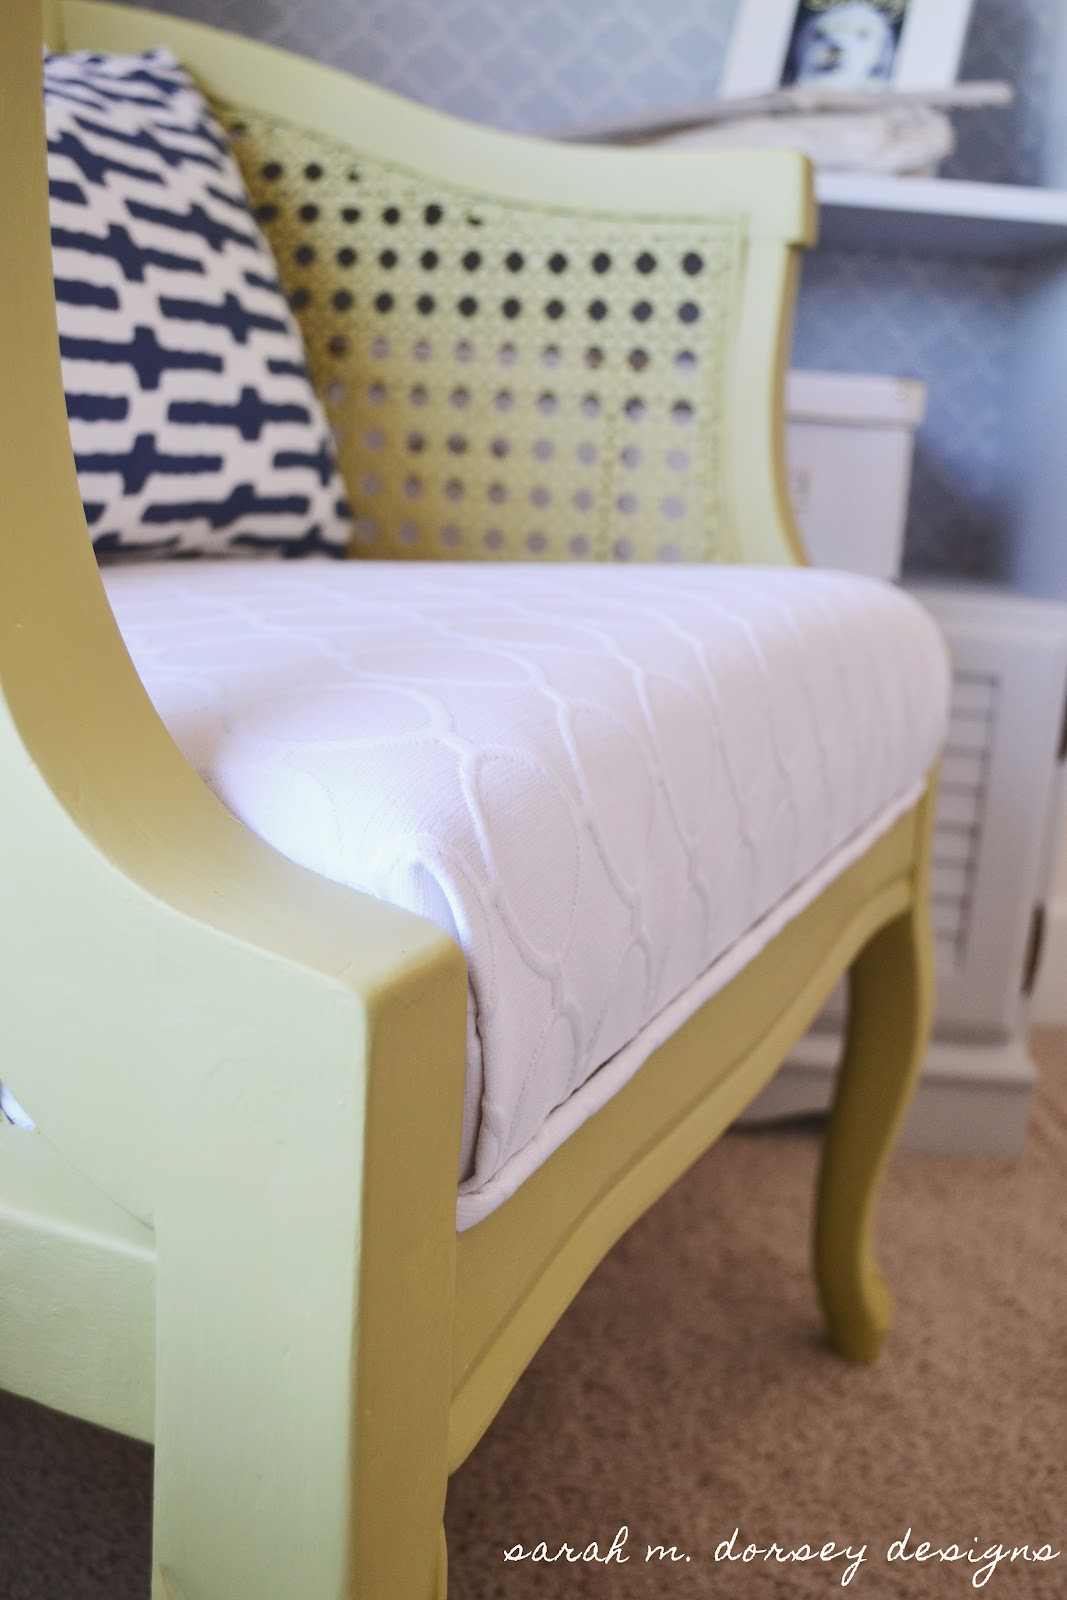 Comcane Chair Designs : purchased the feather pillow insert from Ikea for about $7 and made ...